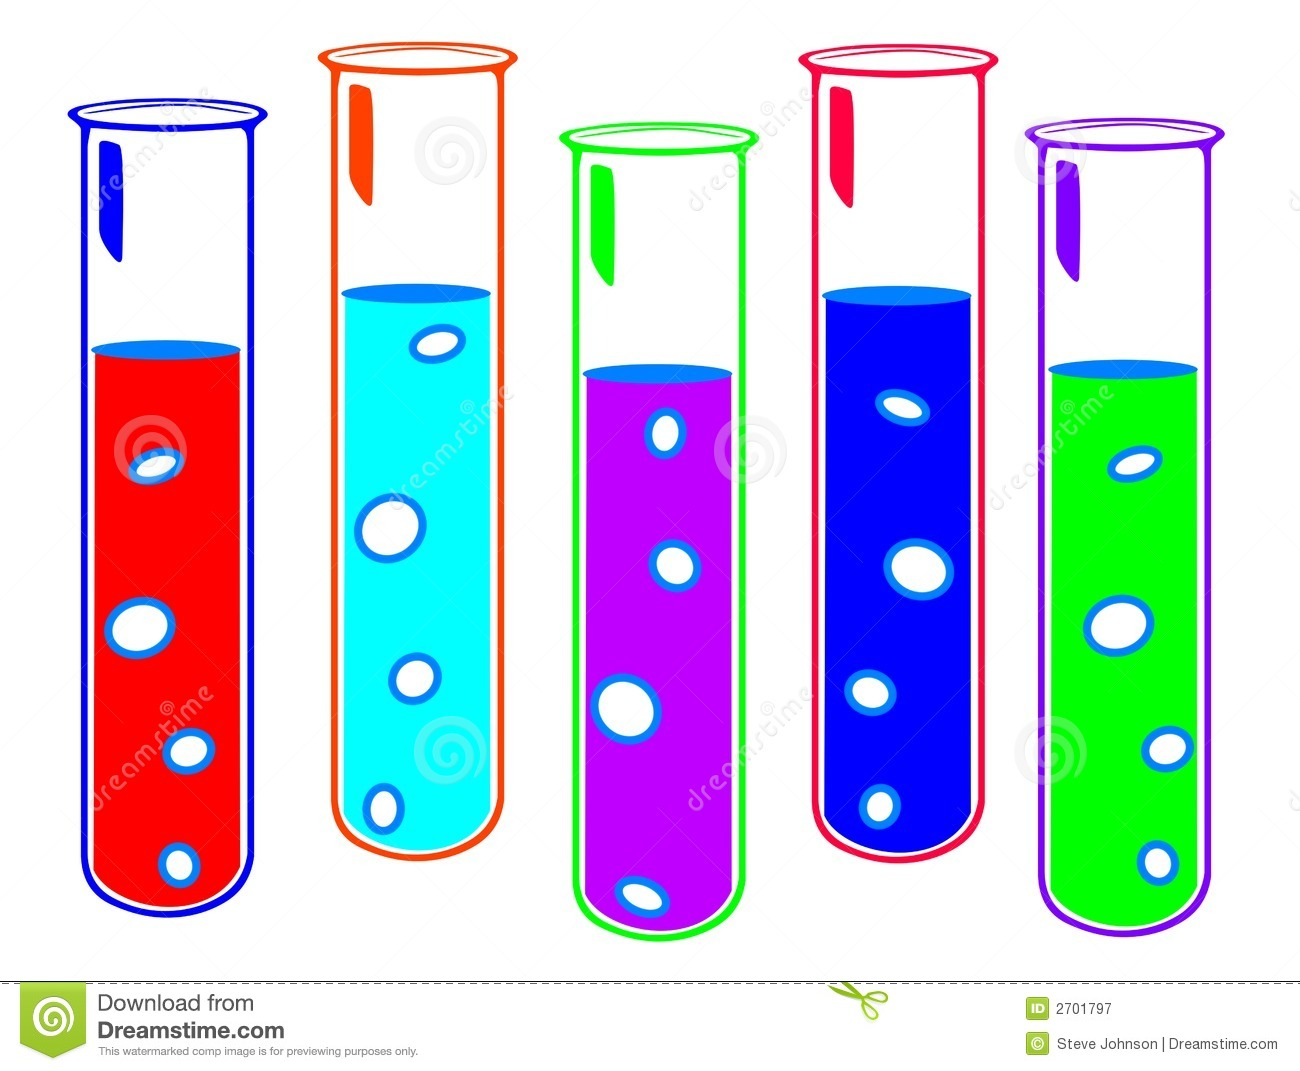 Clipart test tubes clipart library stock Colored test tubes | Clipart Panda - Free Clipart Images clipart library stock